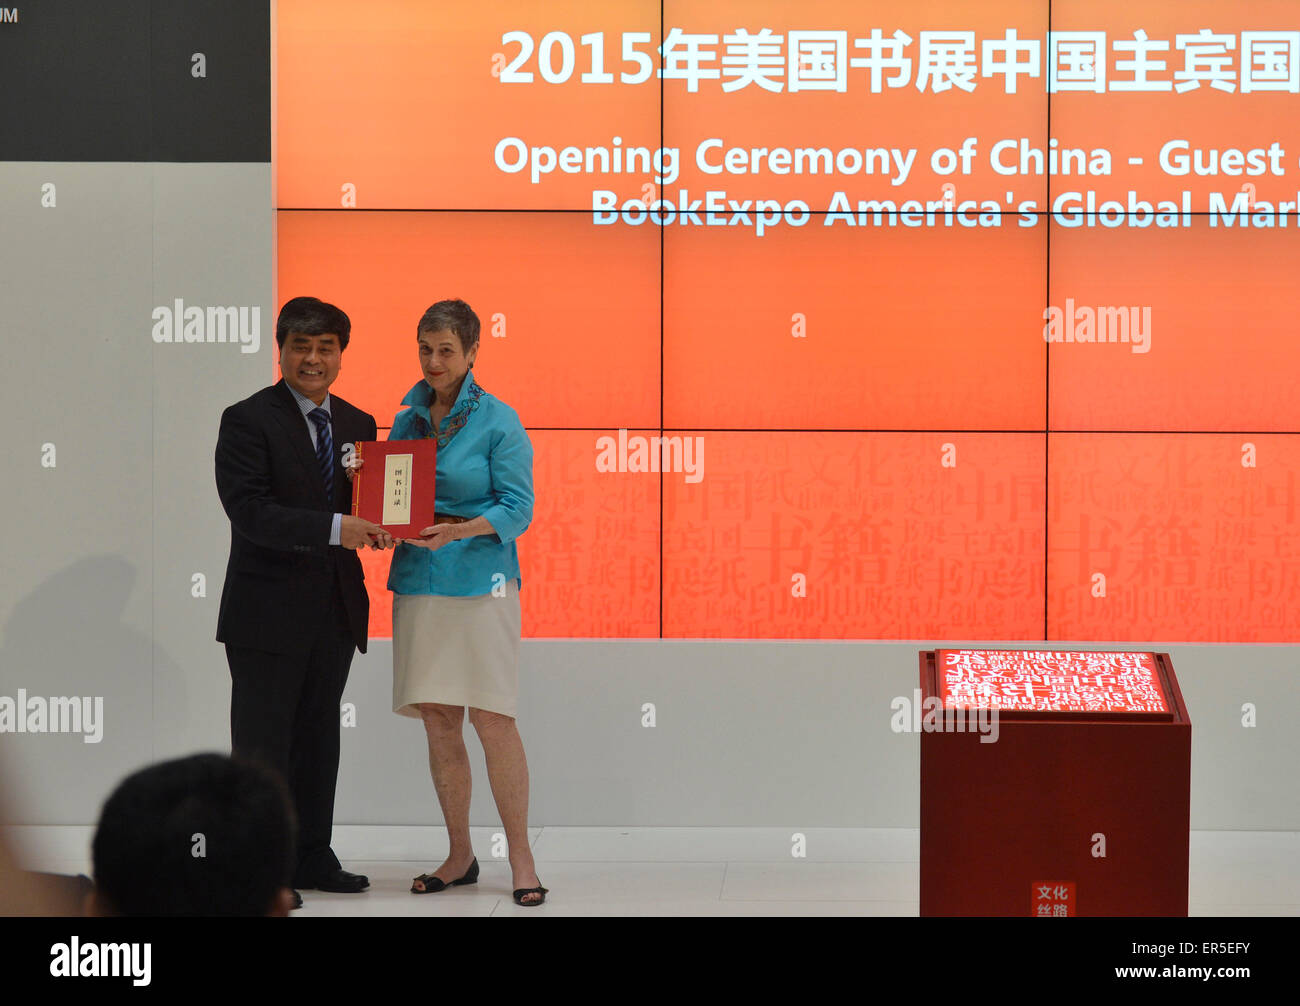 """(150527) -- NEW YORK, May 27, 2015 (Xinhua) -- Wu Shangzhi(L), vice minister of China's State Administration of Press, Publication, Radio, Film and Television, gives a book as gifts to Kristin Mc Daught, a representitive from New York Public Library during the opening ceremony of China-Guest of Honor 2015 BookExpo America's Global Market Forum in New York, the United States, on May 27, 2015. Bringing in nearly 10,000 book titles from some 150 publishers, China came under the spotlight in this """"publishing and cultural capital of the world"""" as BookExpo America (BEA) 2015 kicked off in New York C Stock Photo"""